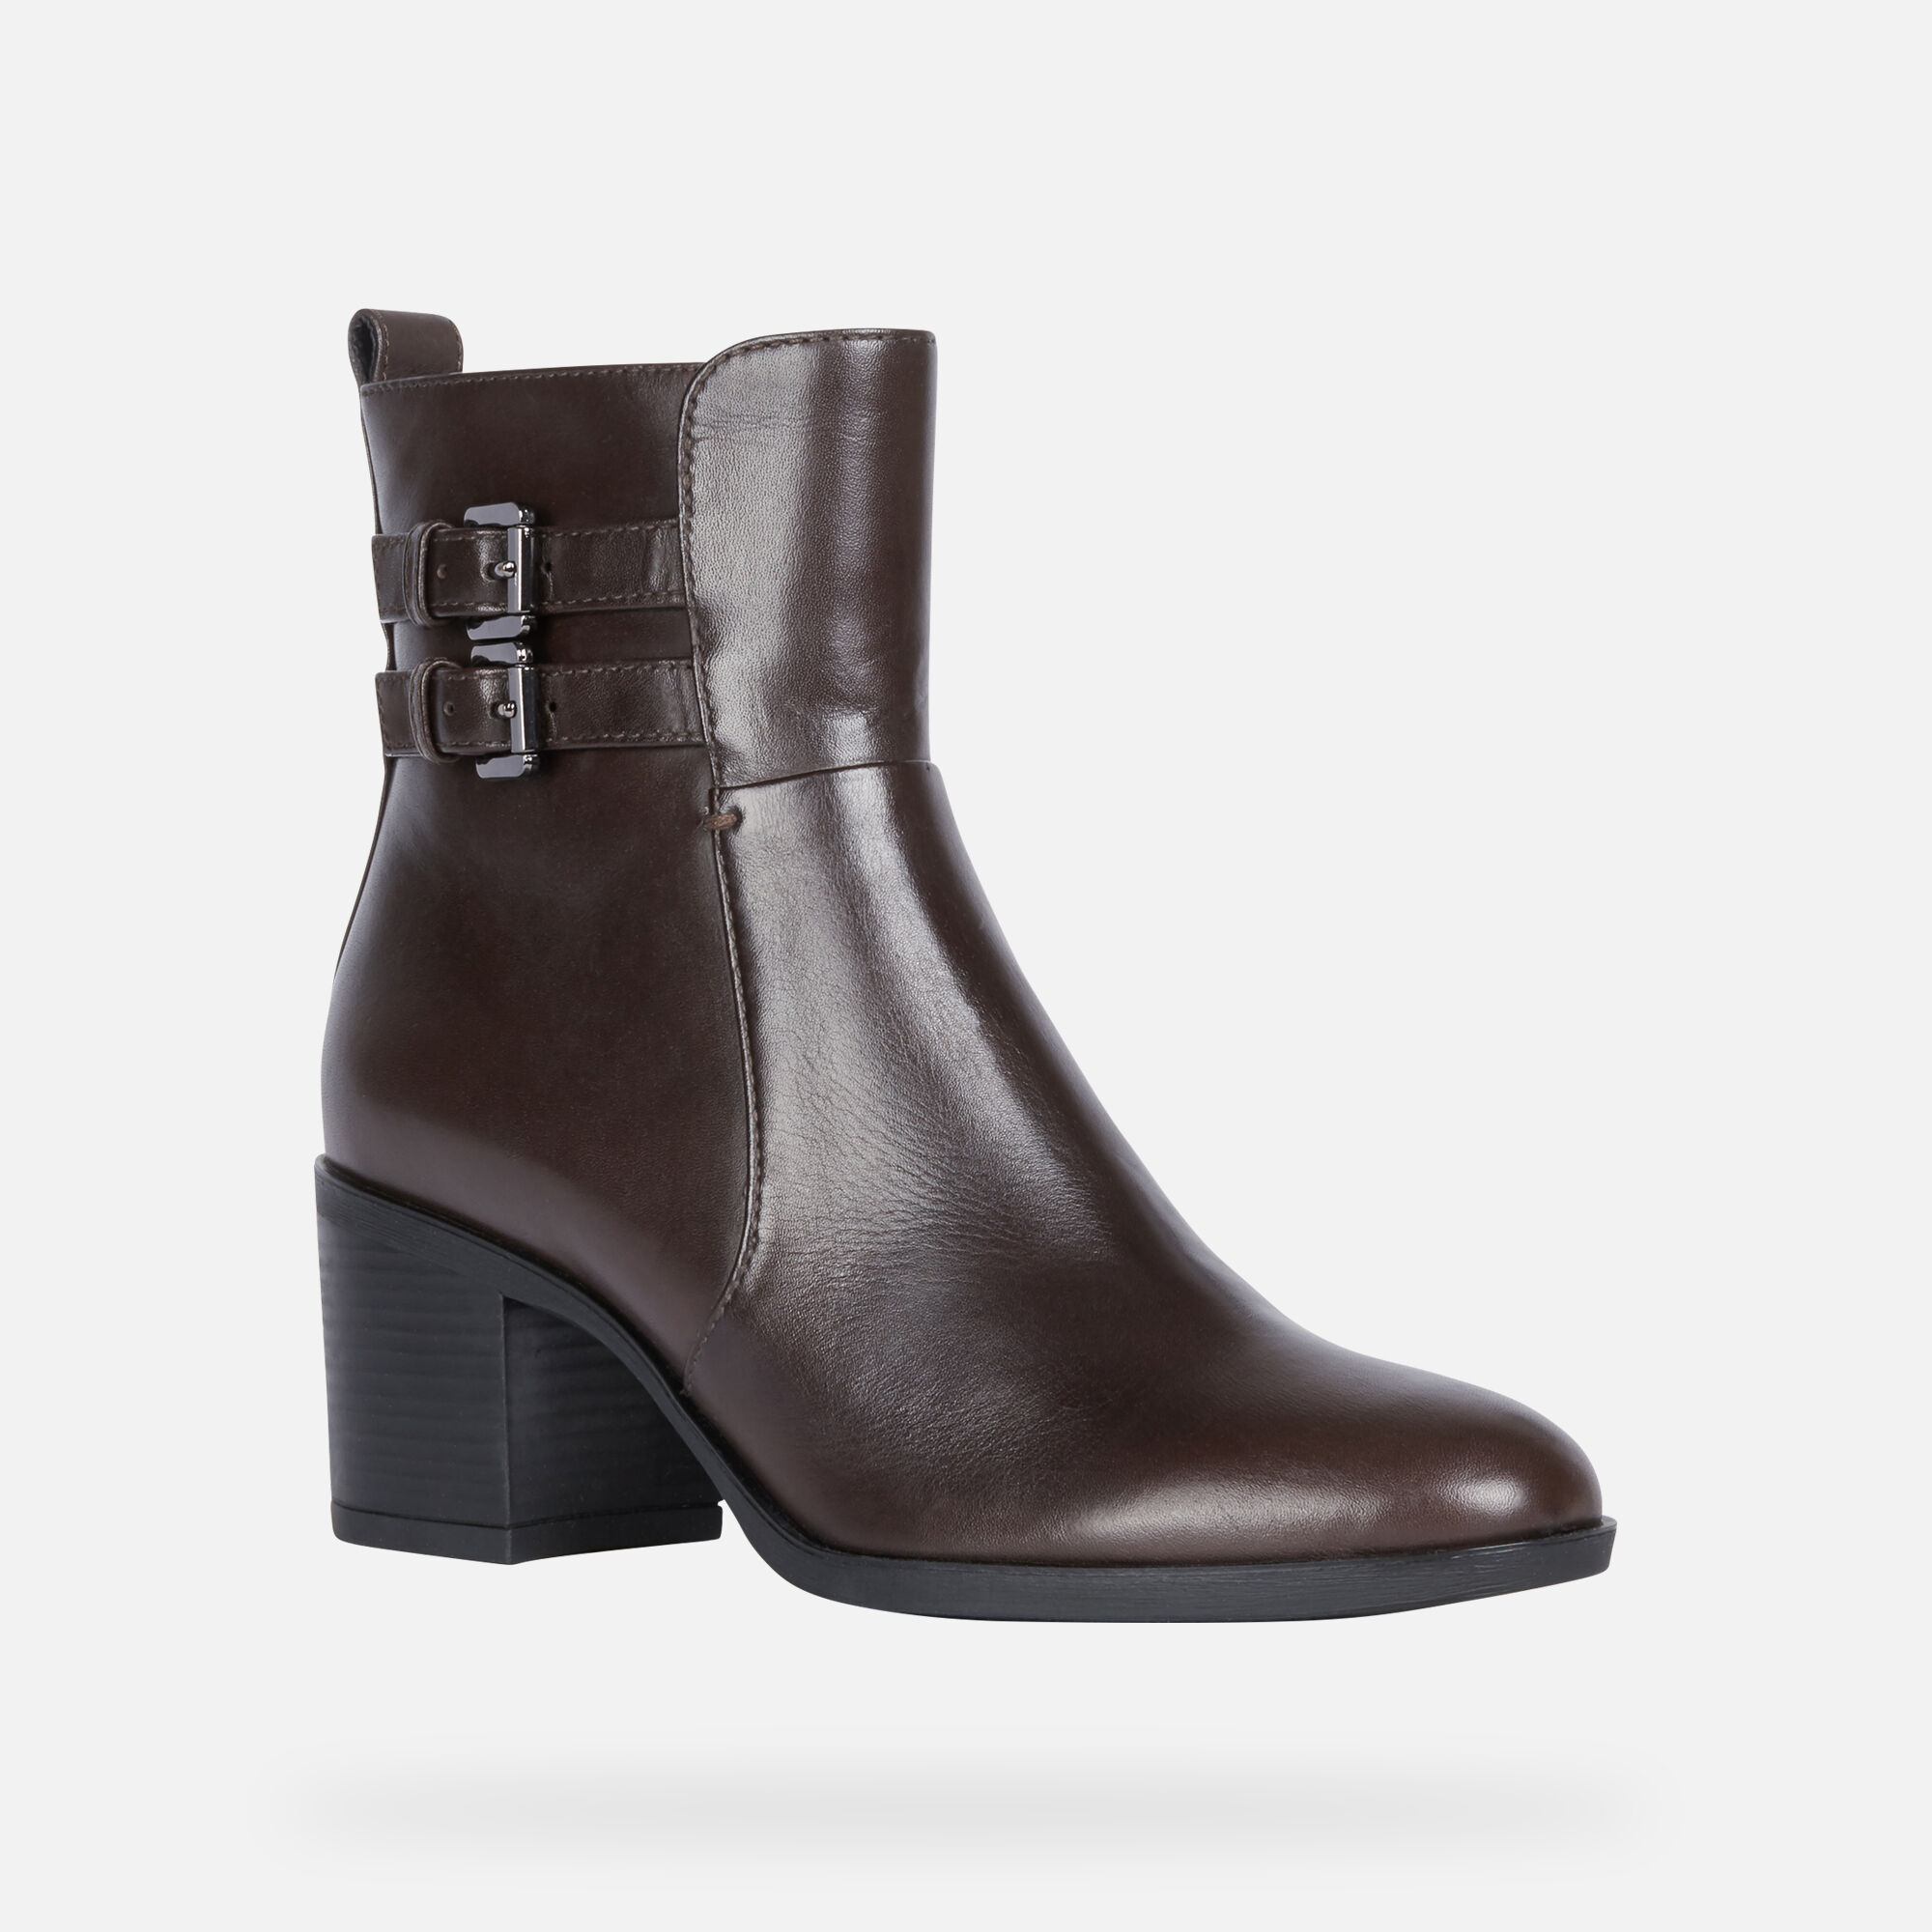 Geox Women's D GLYNNA Brown Ankle Boots | Geox¨ FW 1920